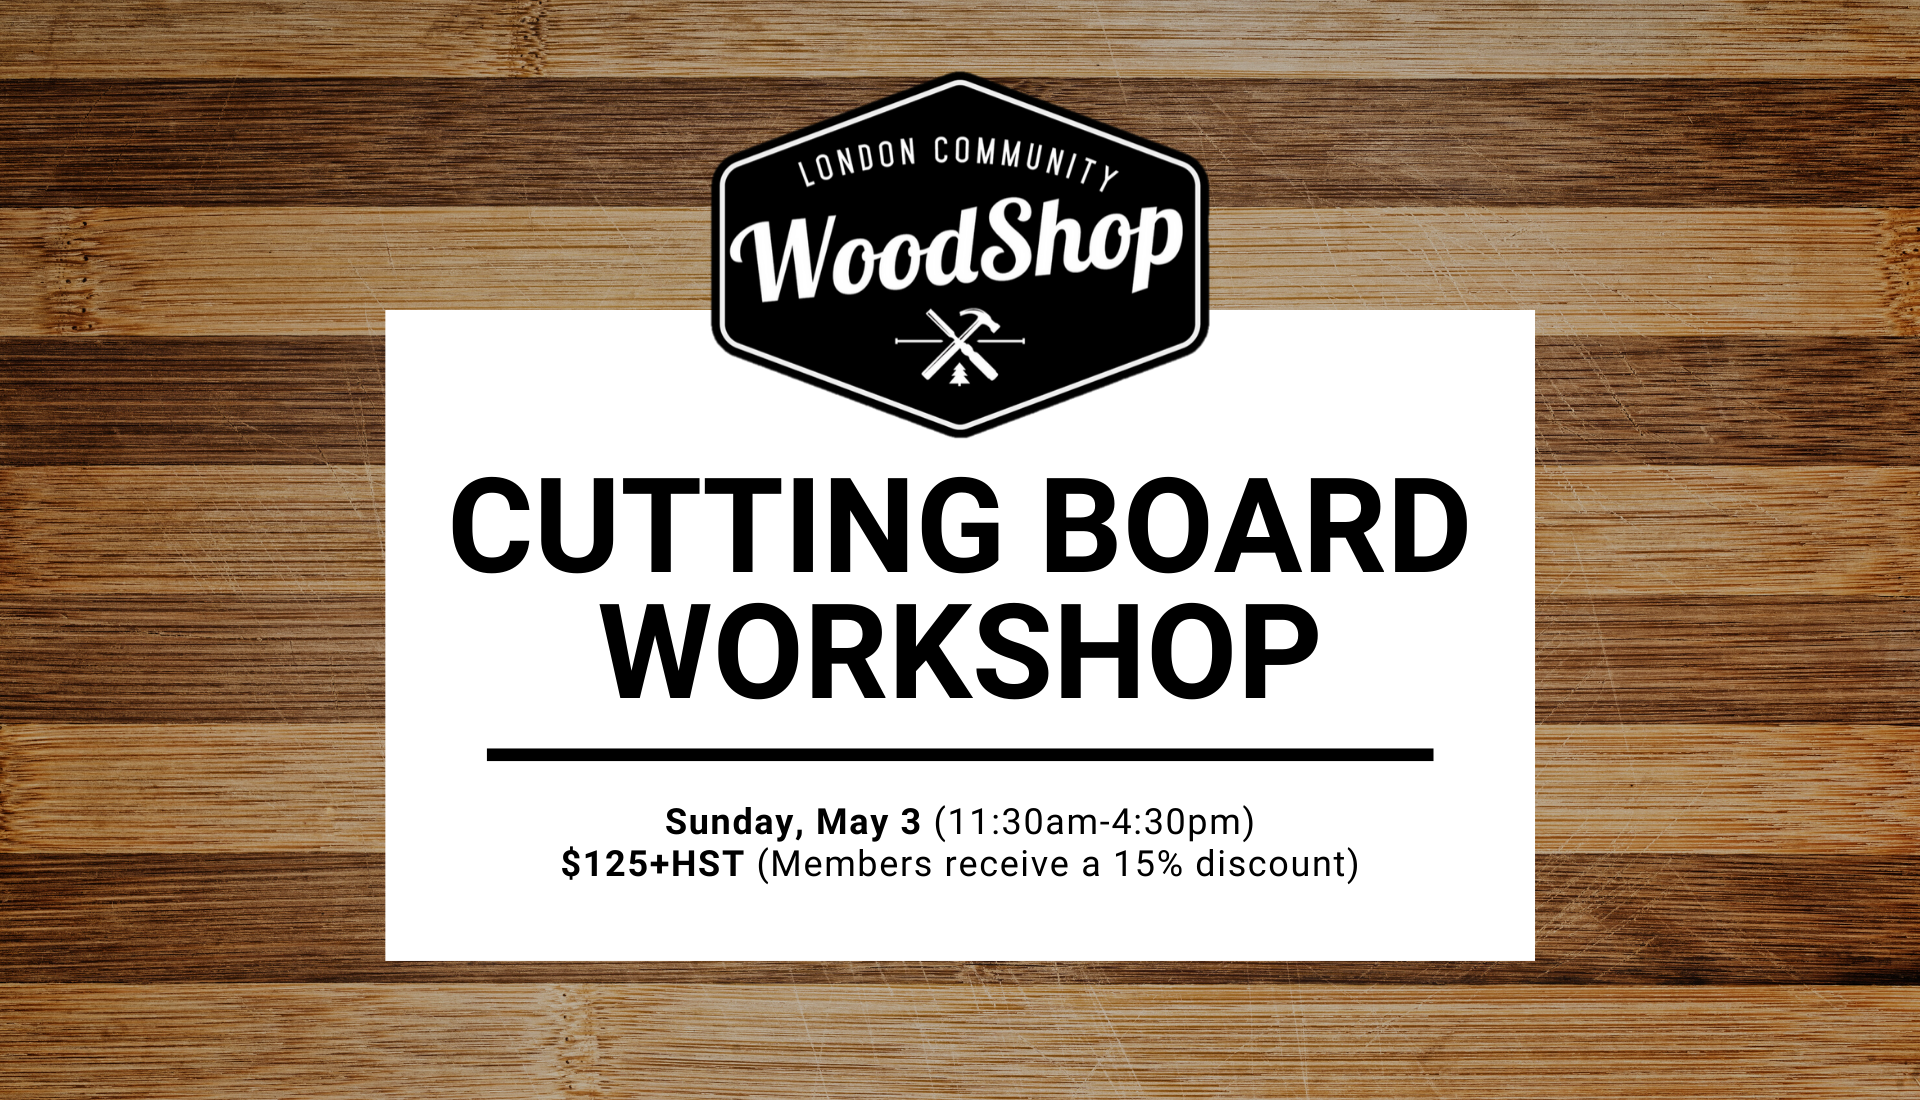 Cutting Board Workshop Sunday May 3 1130am-4 30pm